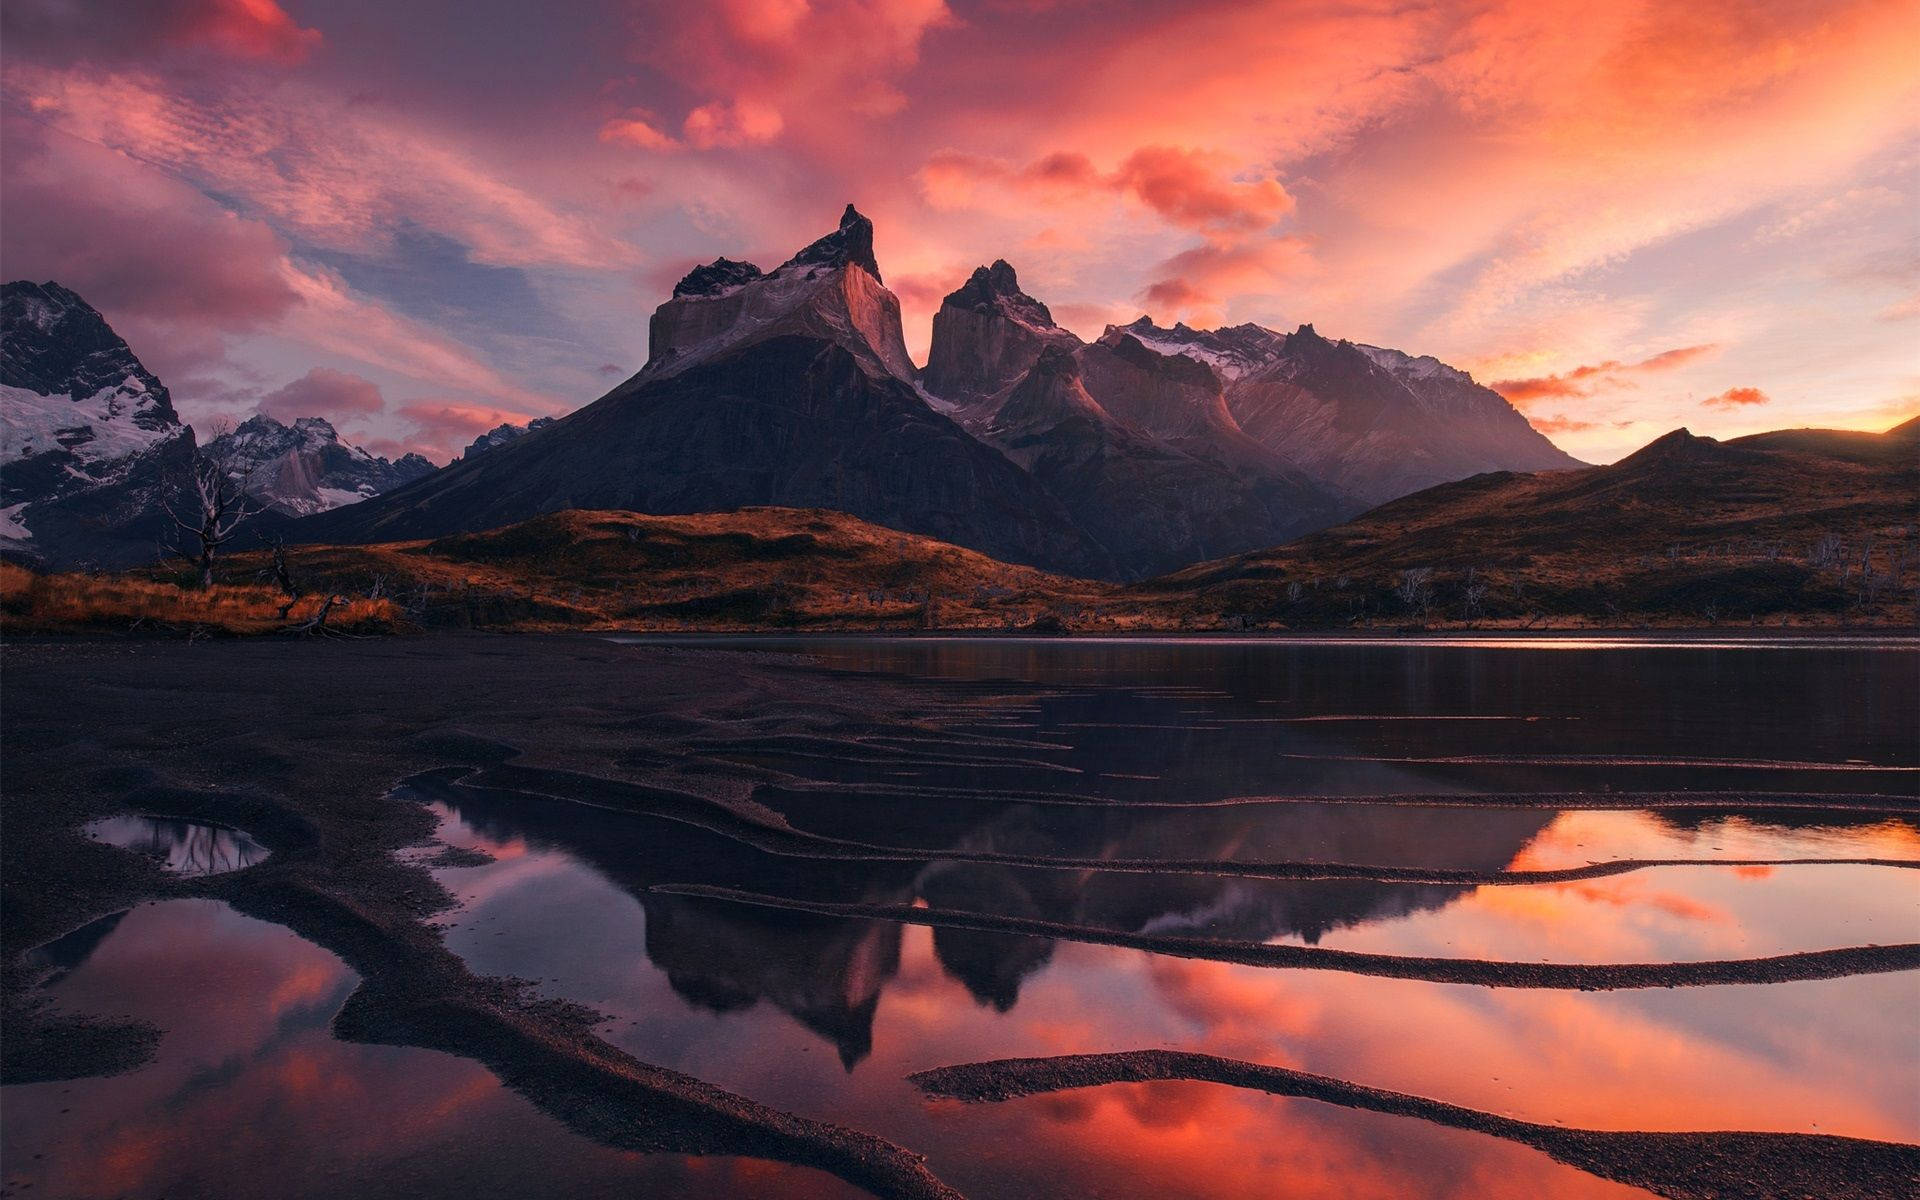 Patagonia Beautiful Landscape Mountains Lake Red Sky Clouds Sunset 1080p Wallpaper Jpg 1920 1200 Sunset Wallpaper Beautiful Landscapes Mountain Sunset